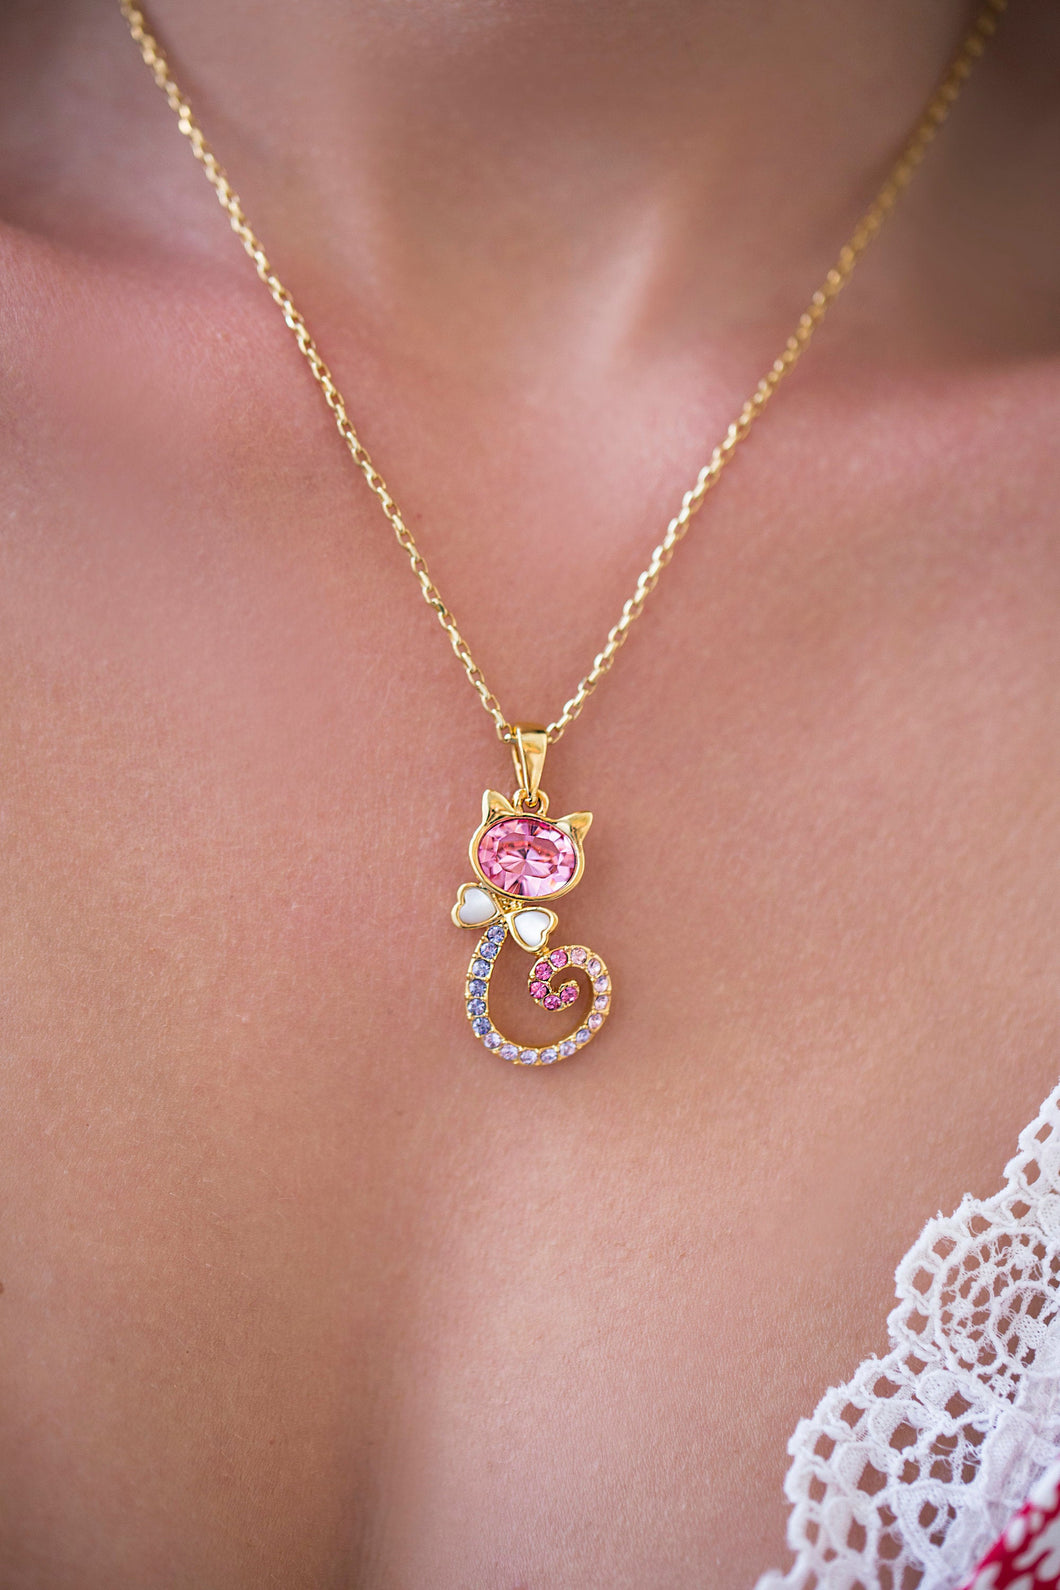 iprecious-creations - Cute Cat 18K  Gold Necklace , Gold Animal Necklace, Crystal Cat Pendant , Gold Pendant , Layering Necklace, Crystal Cat Pendant - Necklace